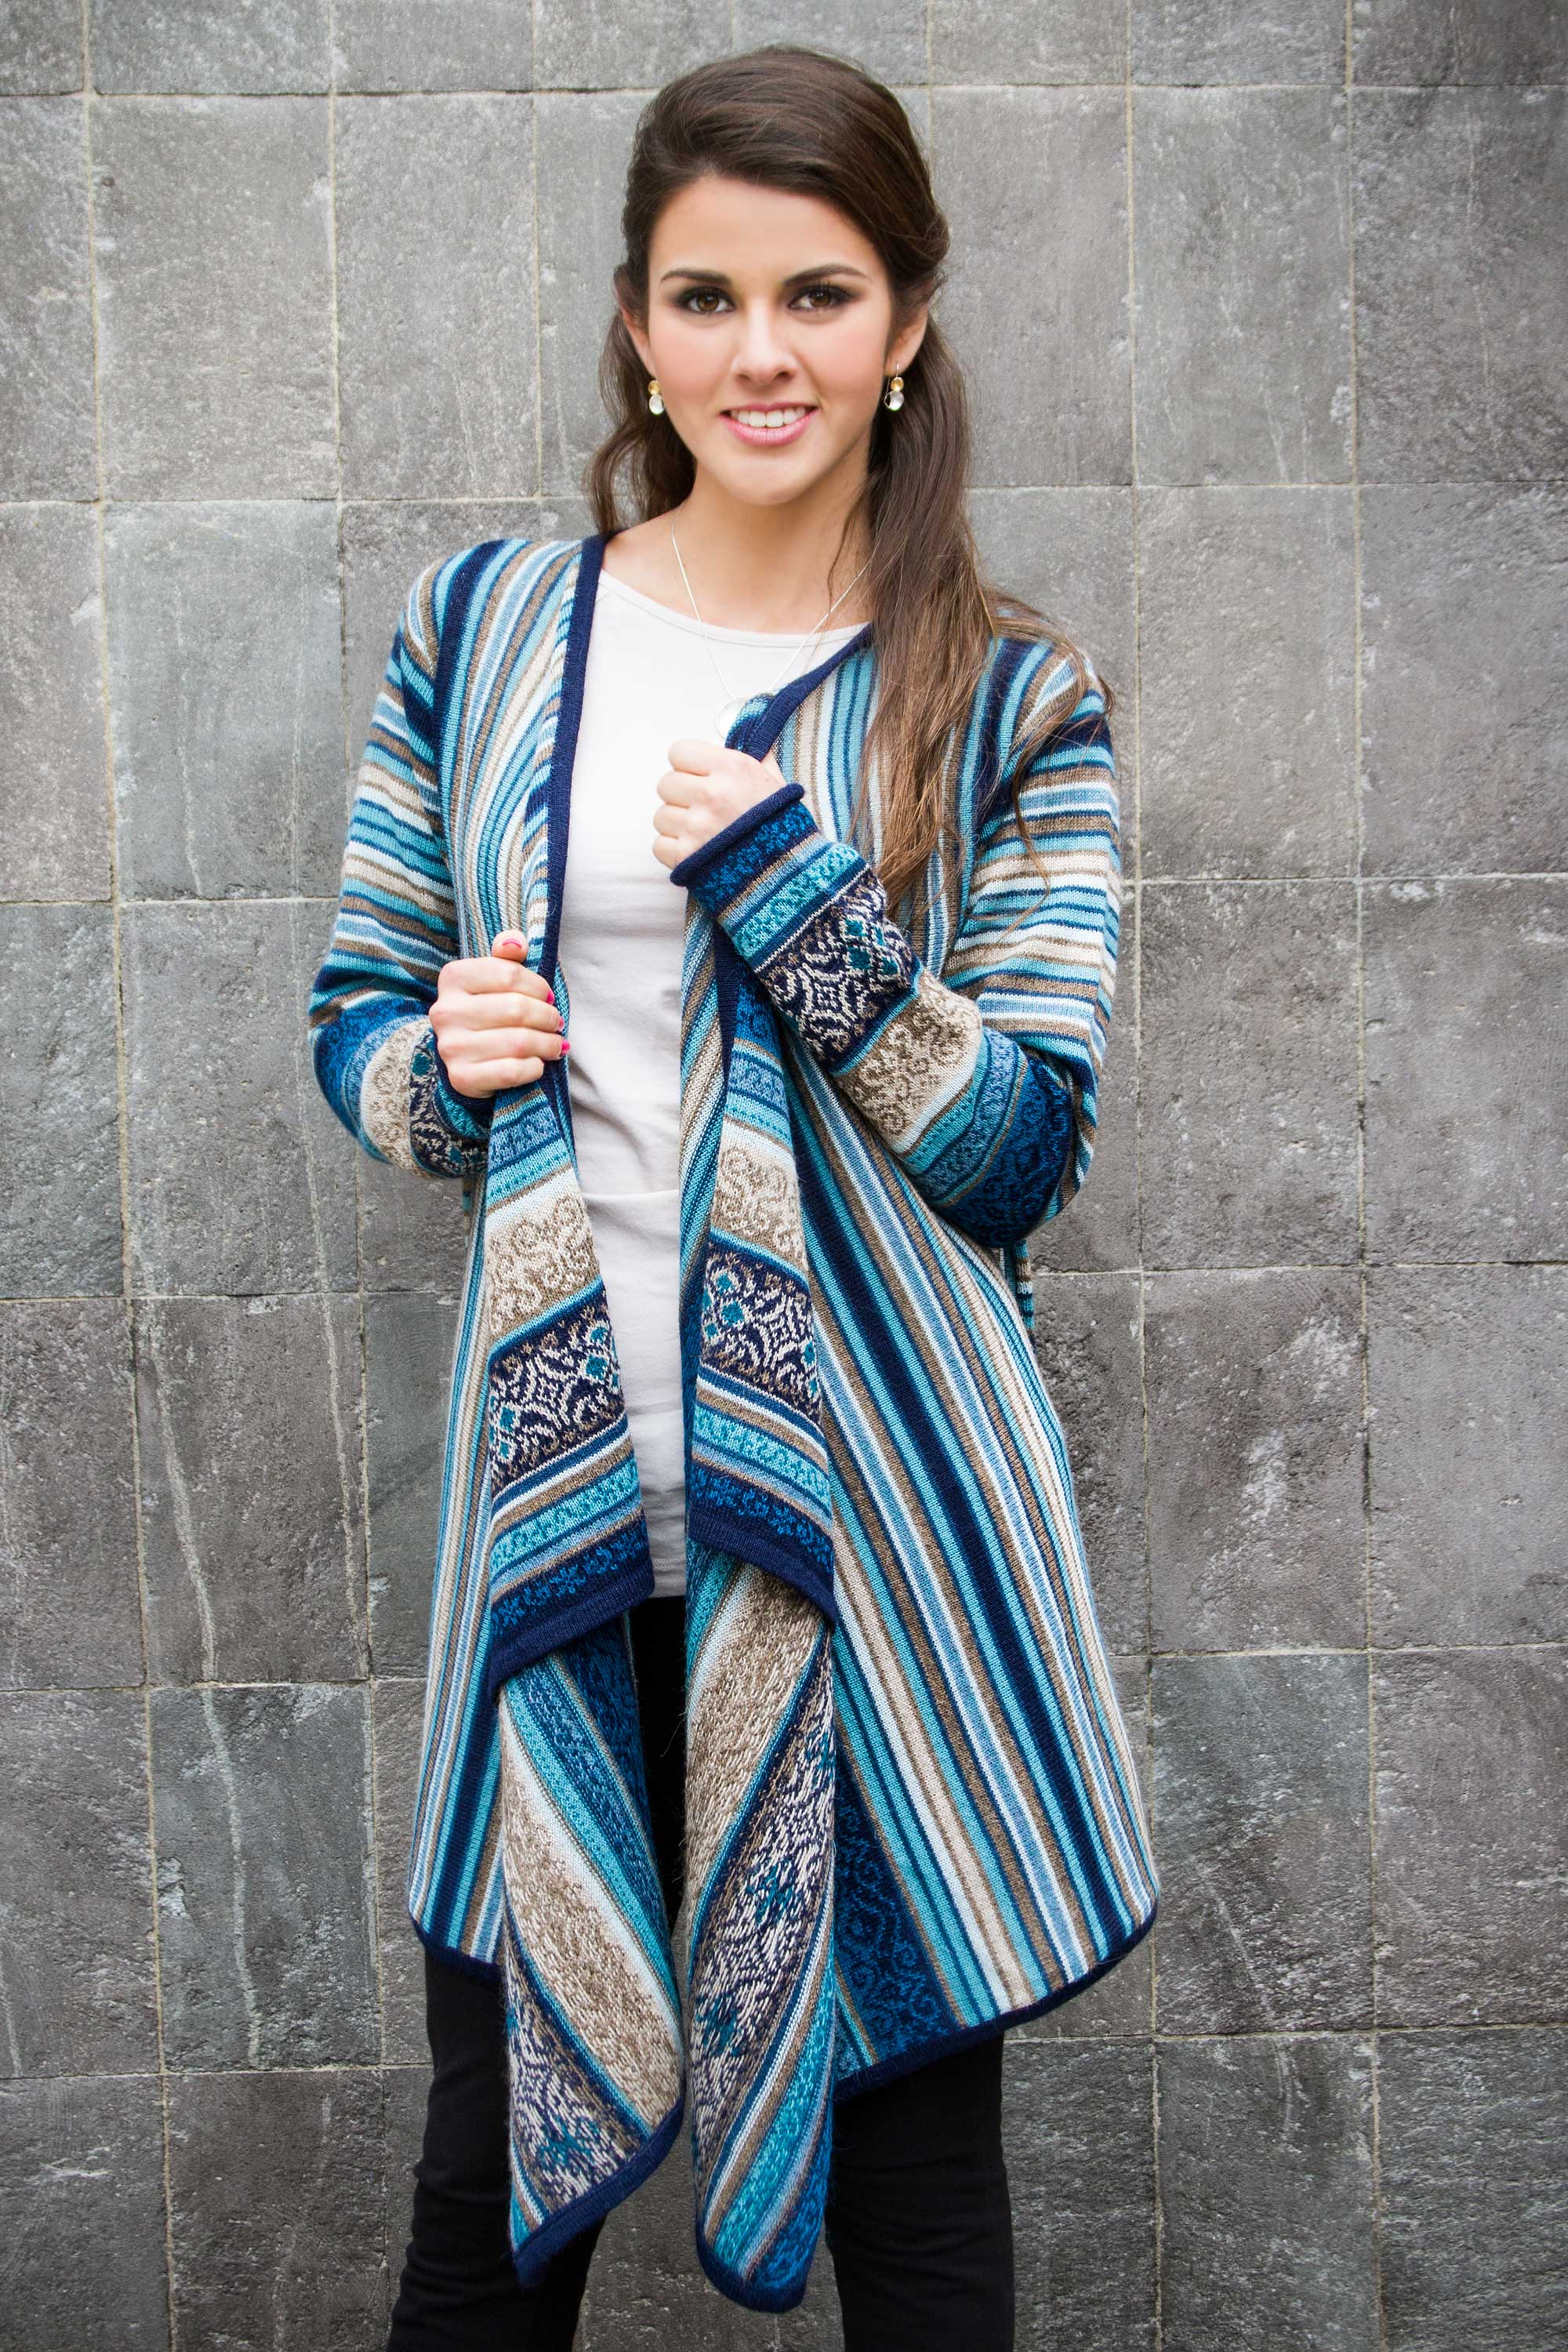 100% Alpaca Open Front Cardigan in Shades of Blue, 'Stellar Blue' gray grey NOVICA sweater